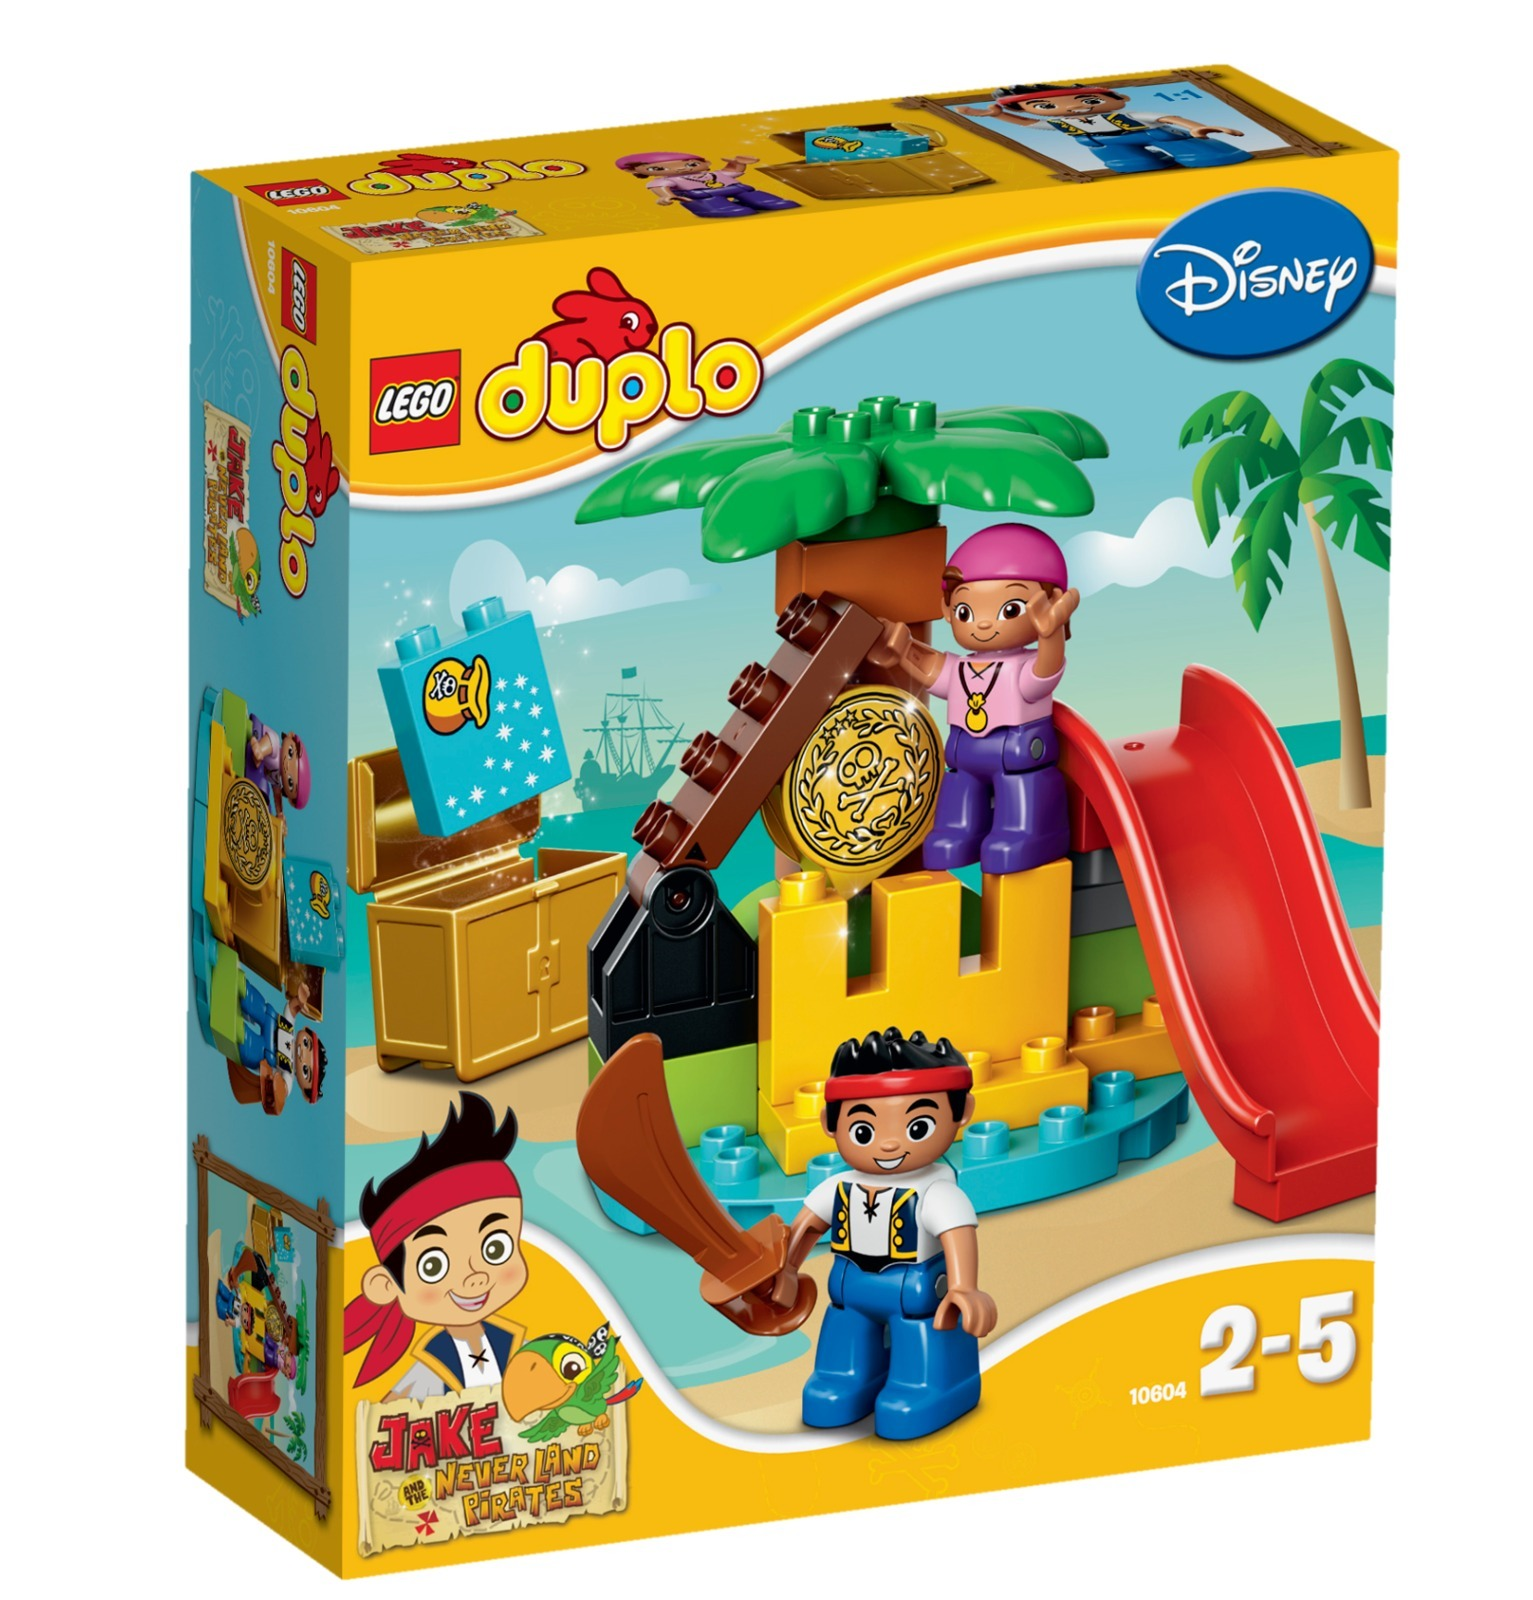 Toy Pirate Lego : Lego duplo jake and the never land pirates treasure